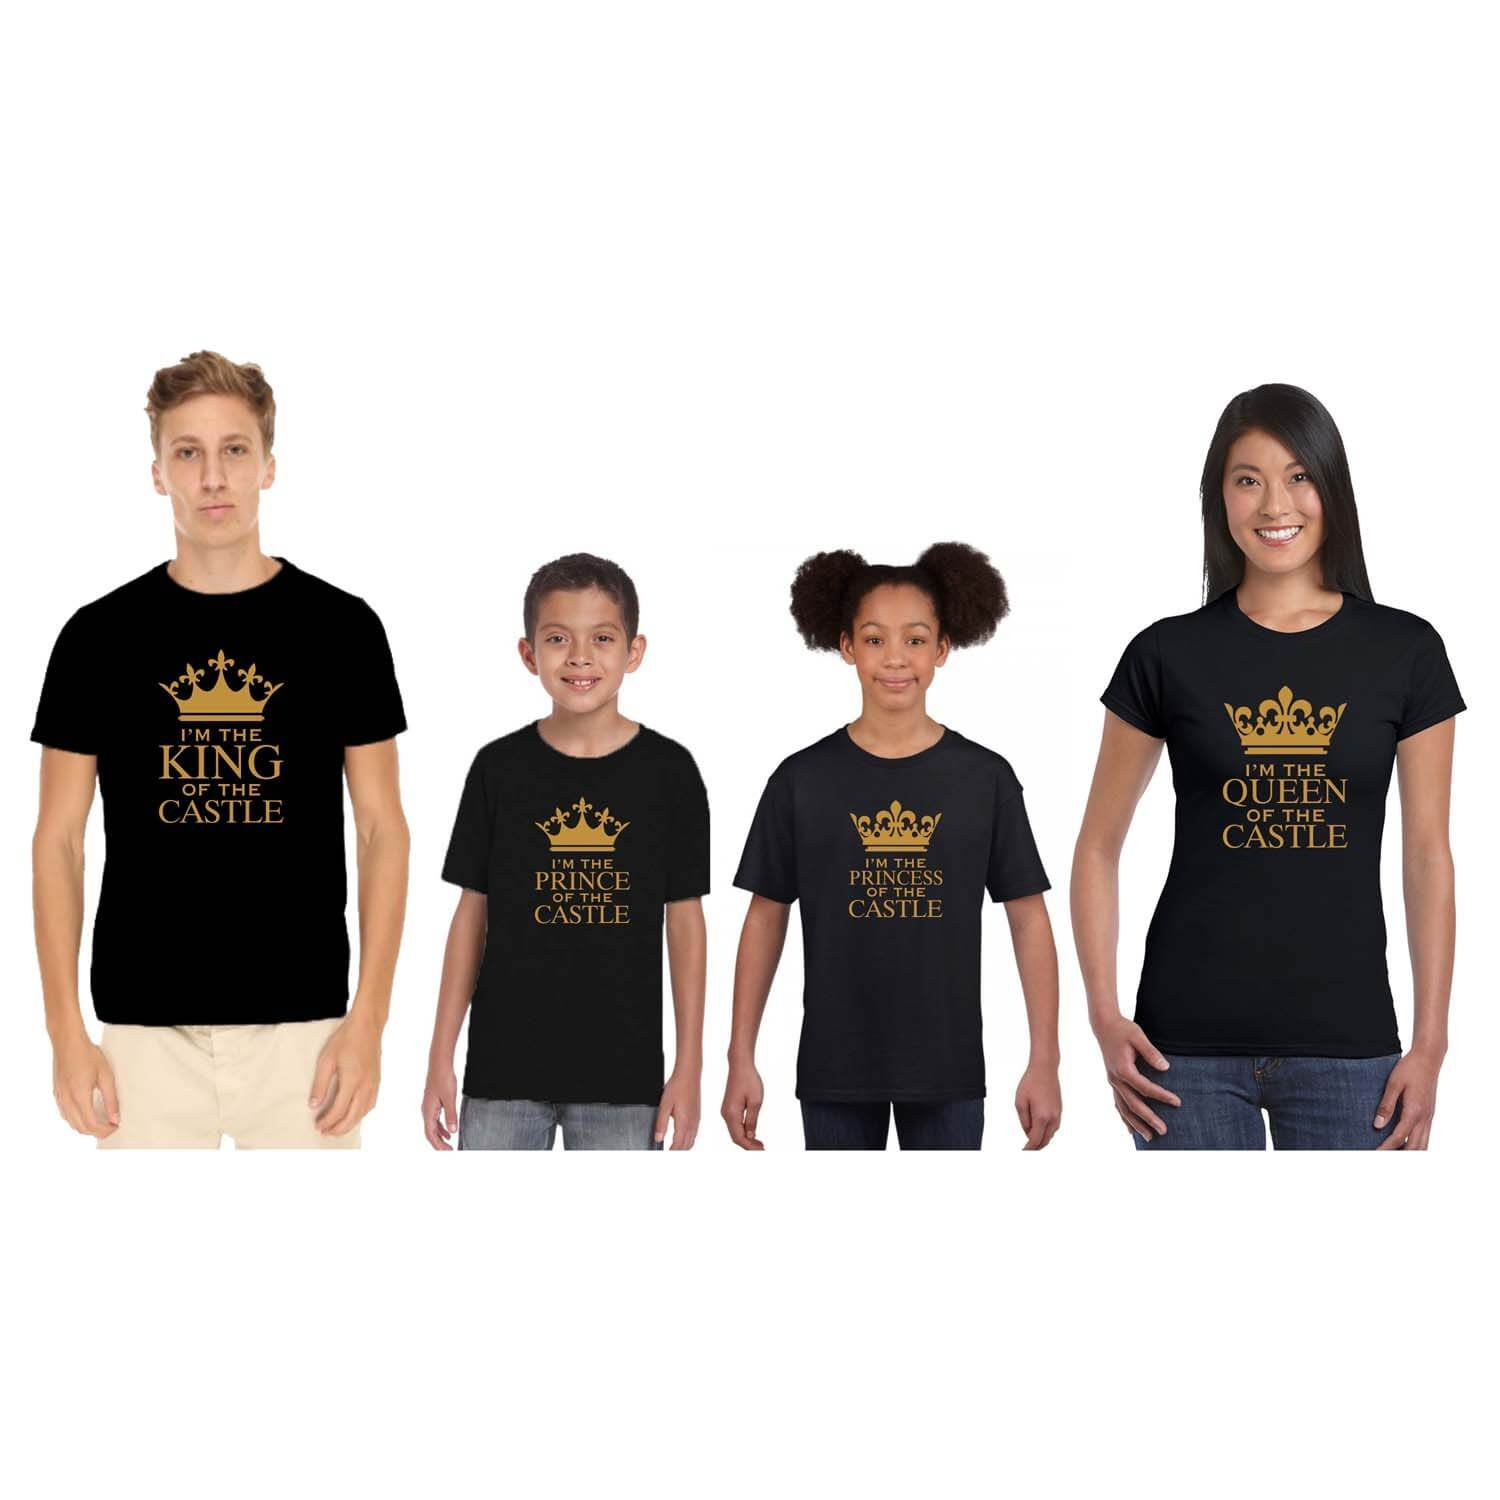 23d4fcc79 YaYa cafe Castle King Queen Family T-Shirts - Set of 4 for Mom Dad and 2  Kids - Black: Amazon.in: Clothing & Accessories